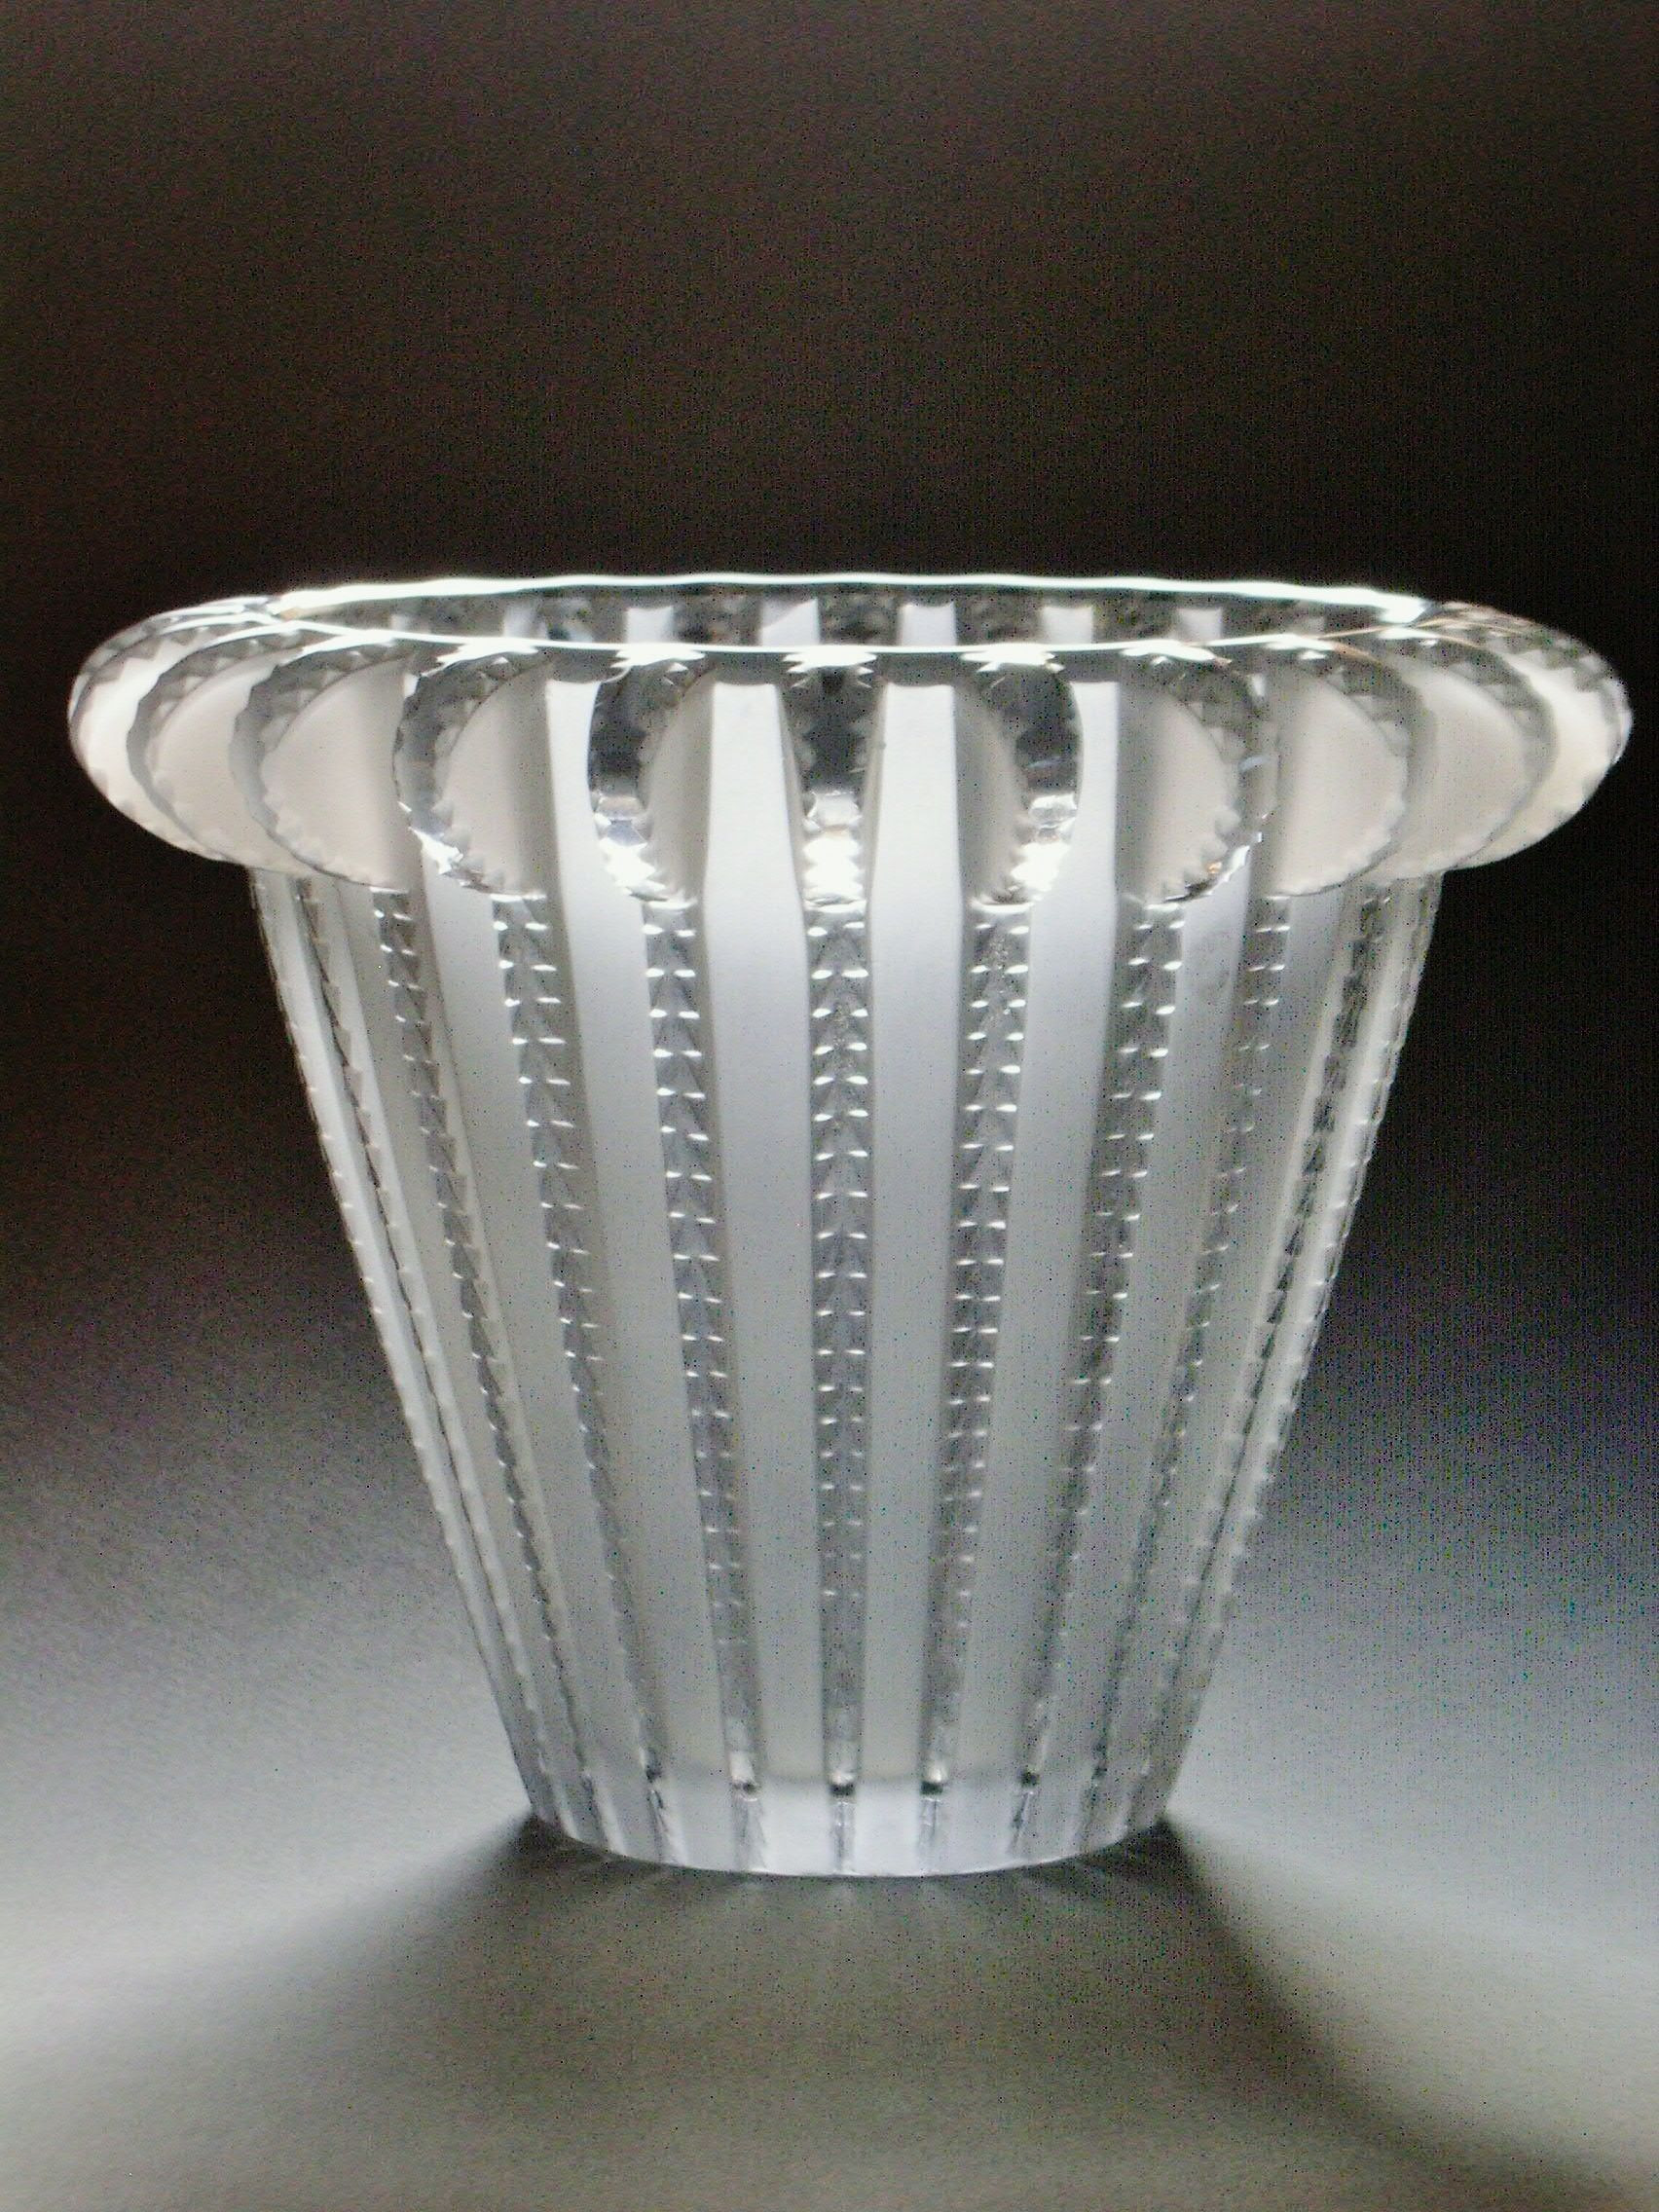 giant glass vase of 50 smoked glass vase the weekly world intended for vase royat rene lalique art glass